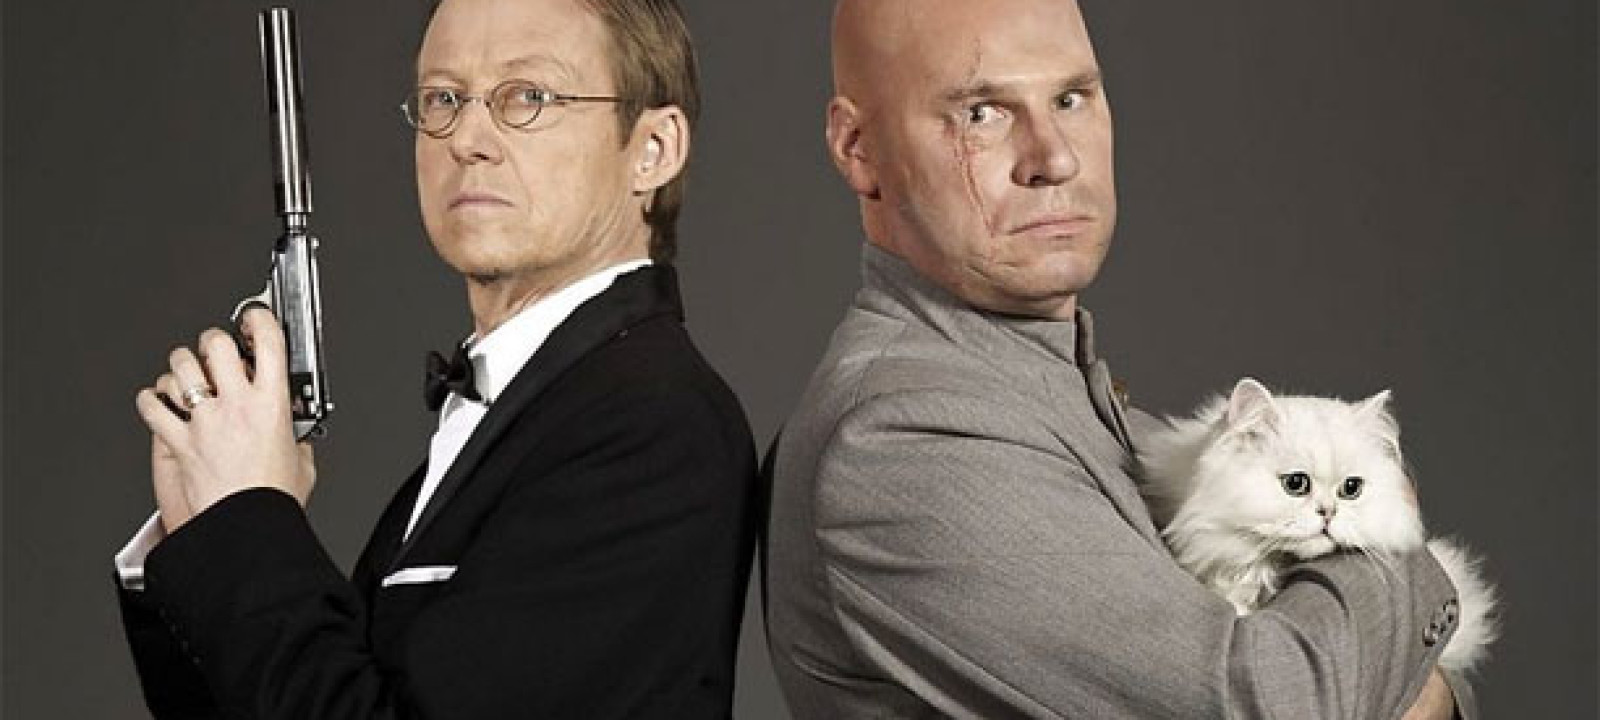 Simon Mayo as James Bond and Mark Kermode as Blofeld in a promotional shot for 'Mark Kermode and Simon Mayo's Film Reviews' (Pic: BBC)